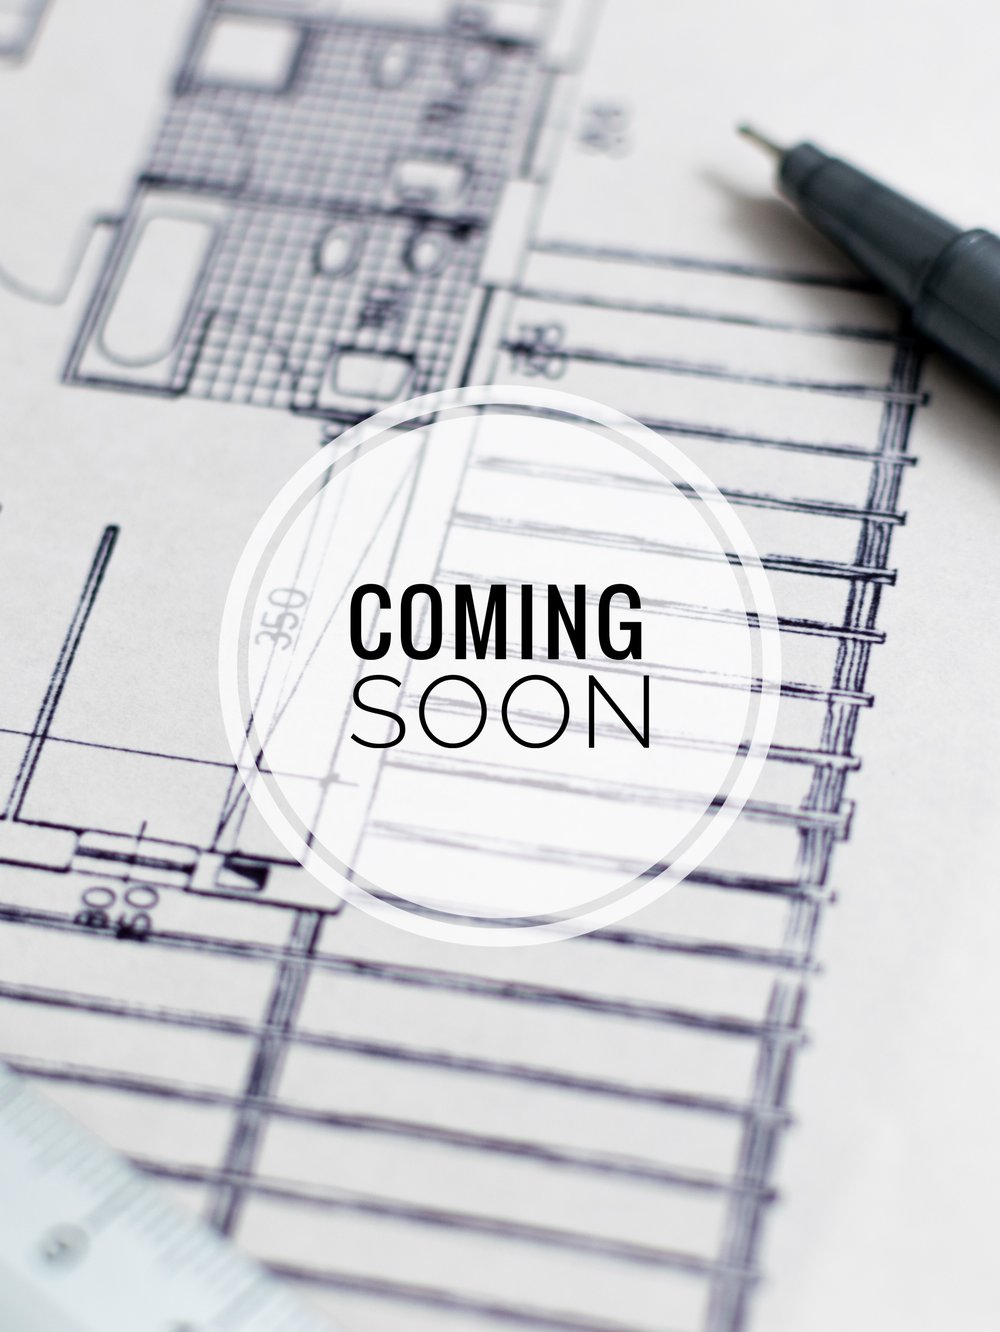 COMING SOON Architect: Christian Rae Studio/Coastal